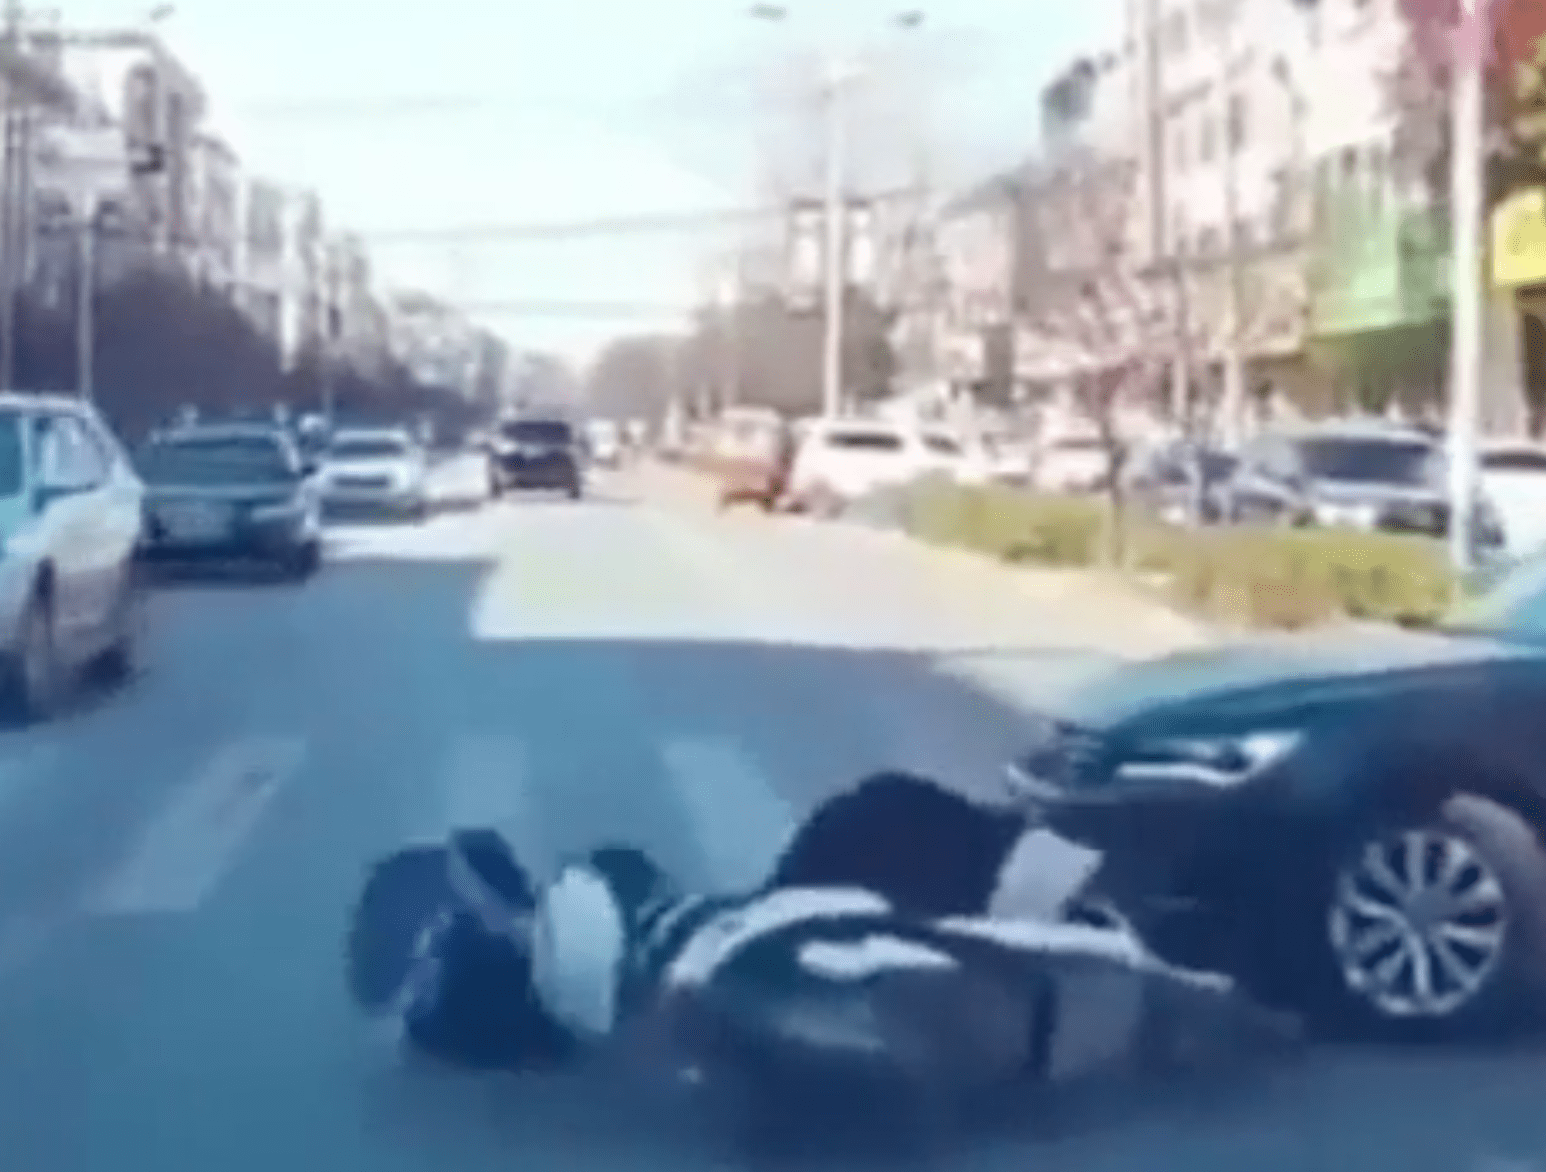 Woman in the middle of an accident scene   Photo: Reddit/Whatcouldgowrong